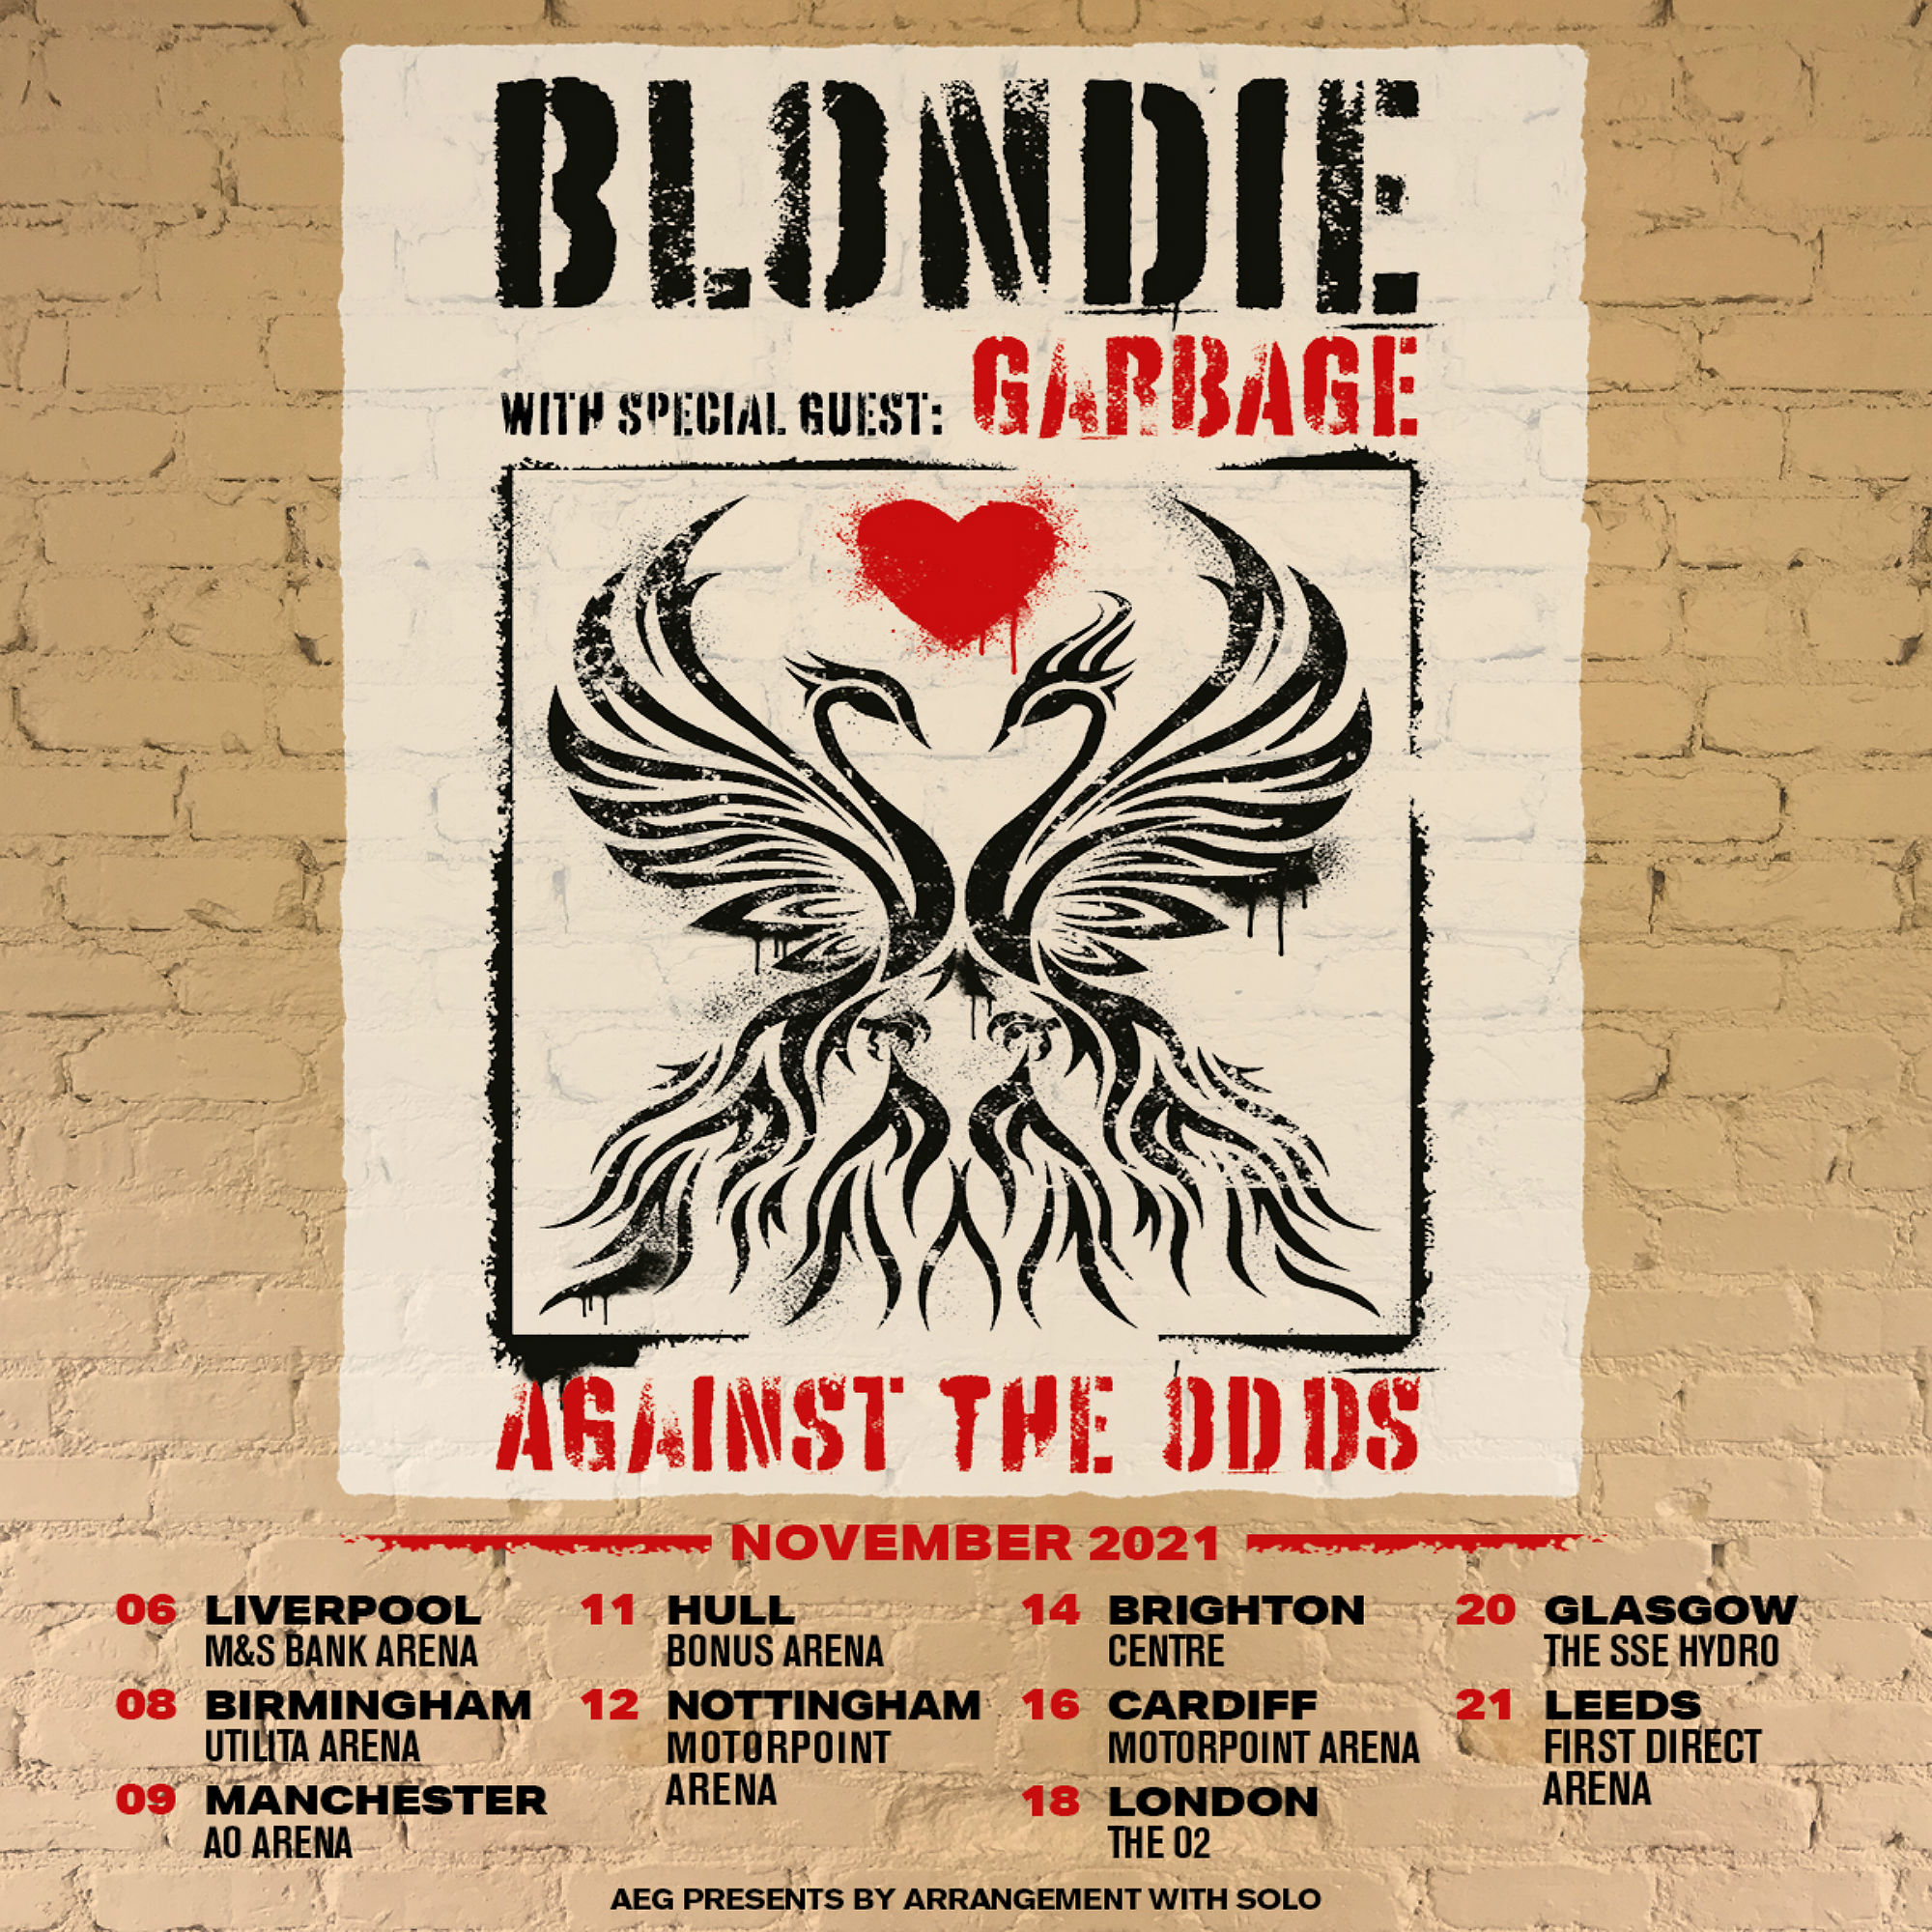 Blondie have announced a 2021 UK tour with Garbage.